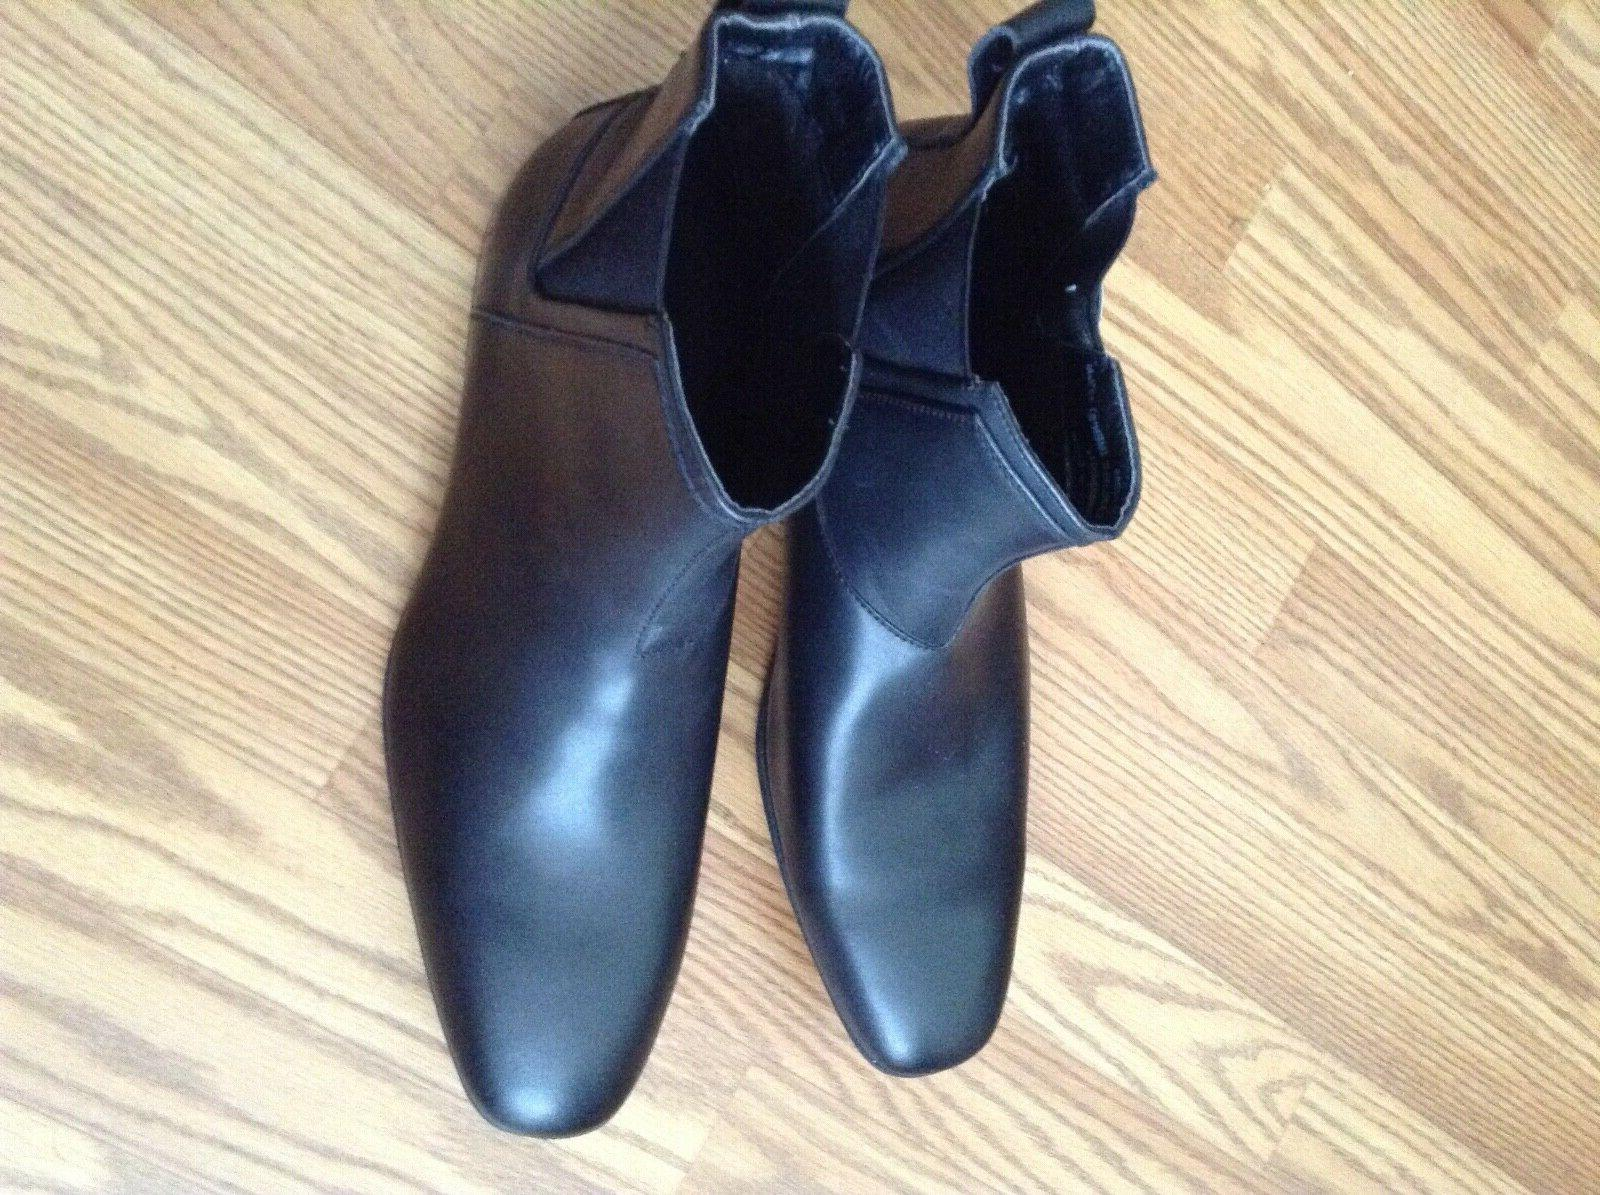 new mens leather boots 10 5 nwt